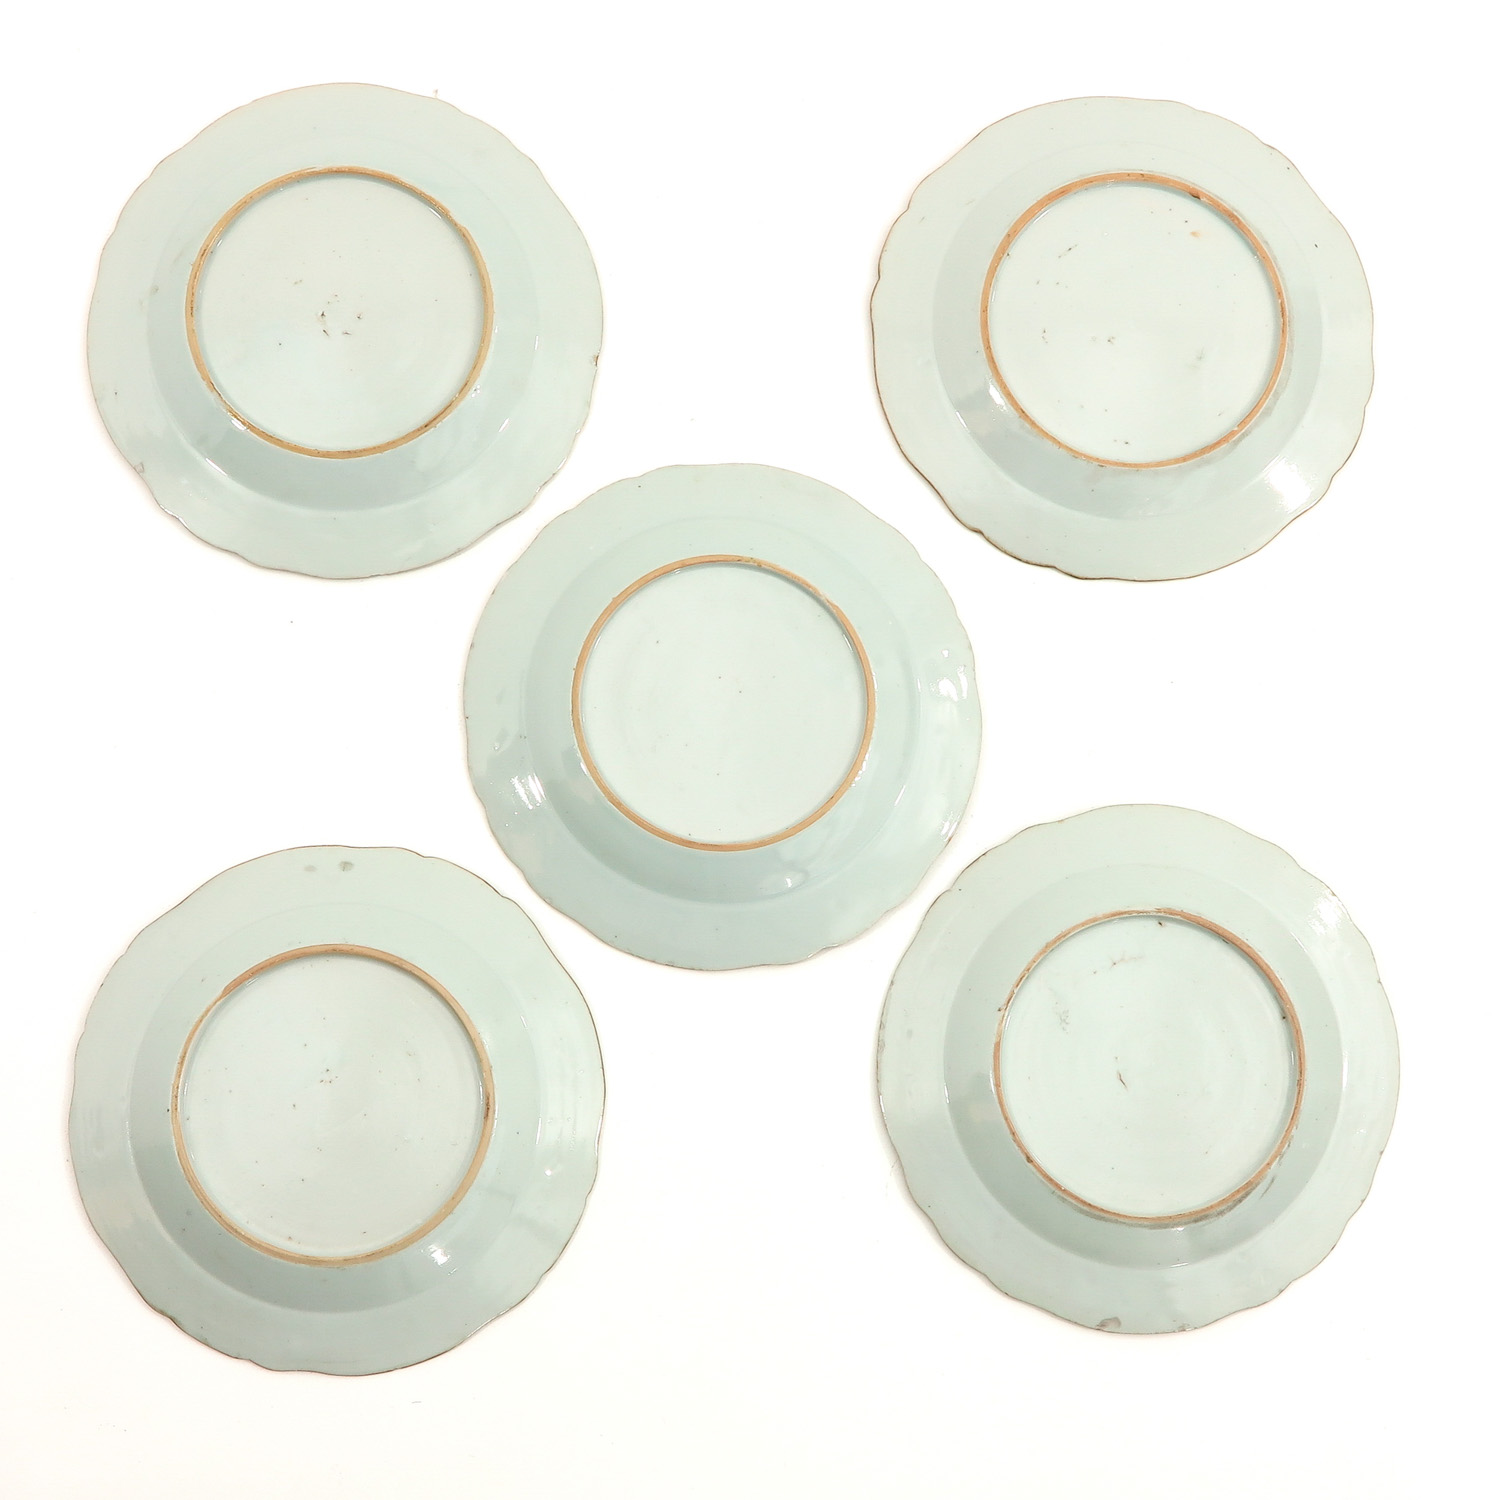 A Series of 5 Famille Rose Plates - Image 2 of 9